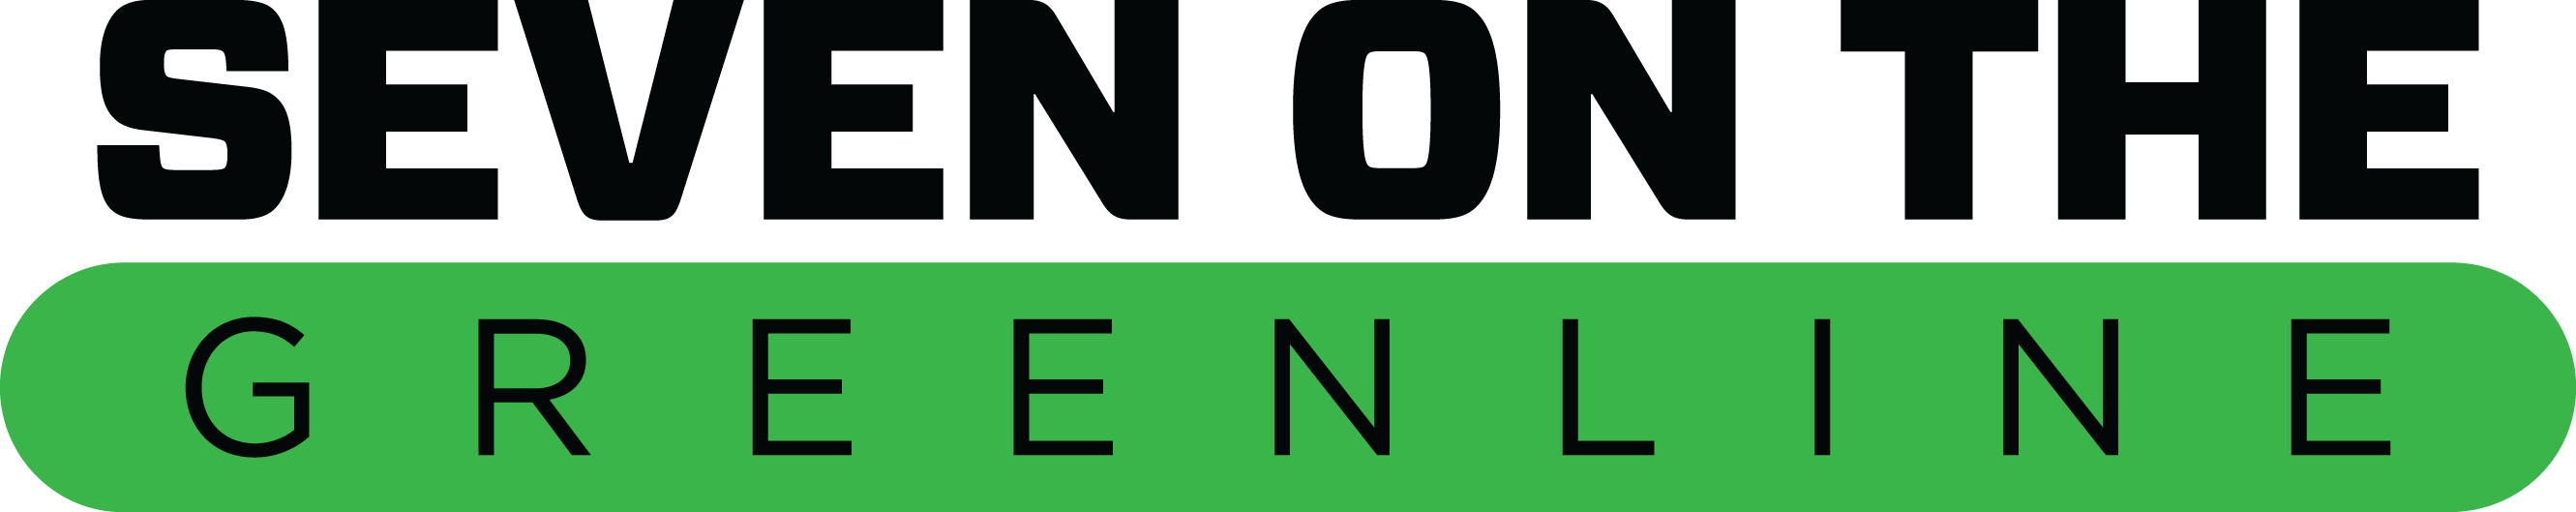 Logo of Seven on the Green Line Hat Tournament.